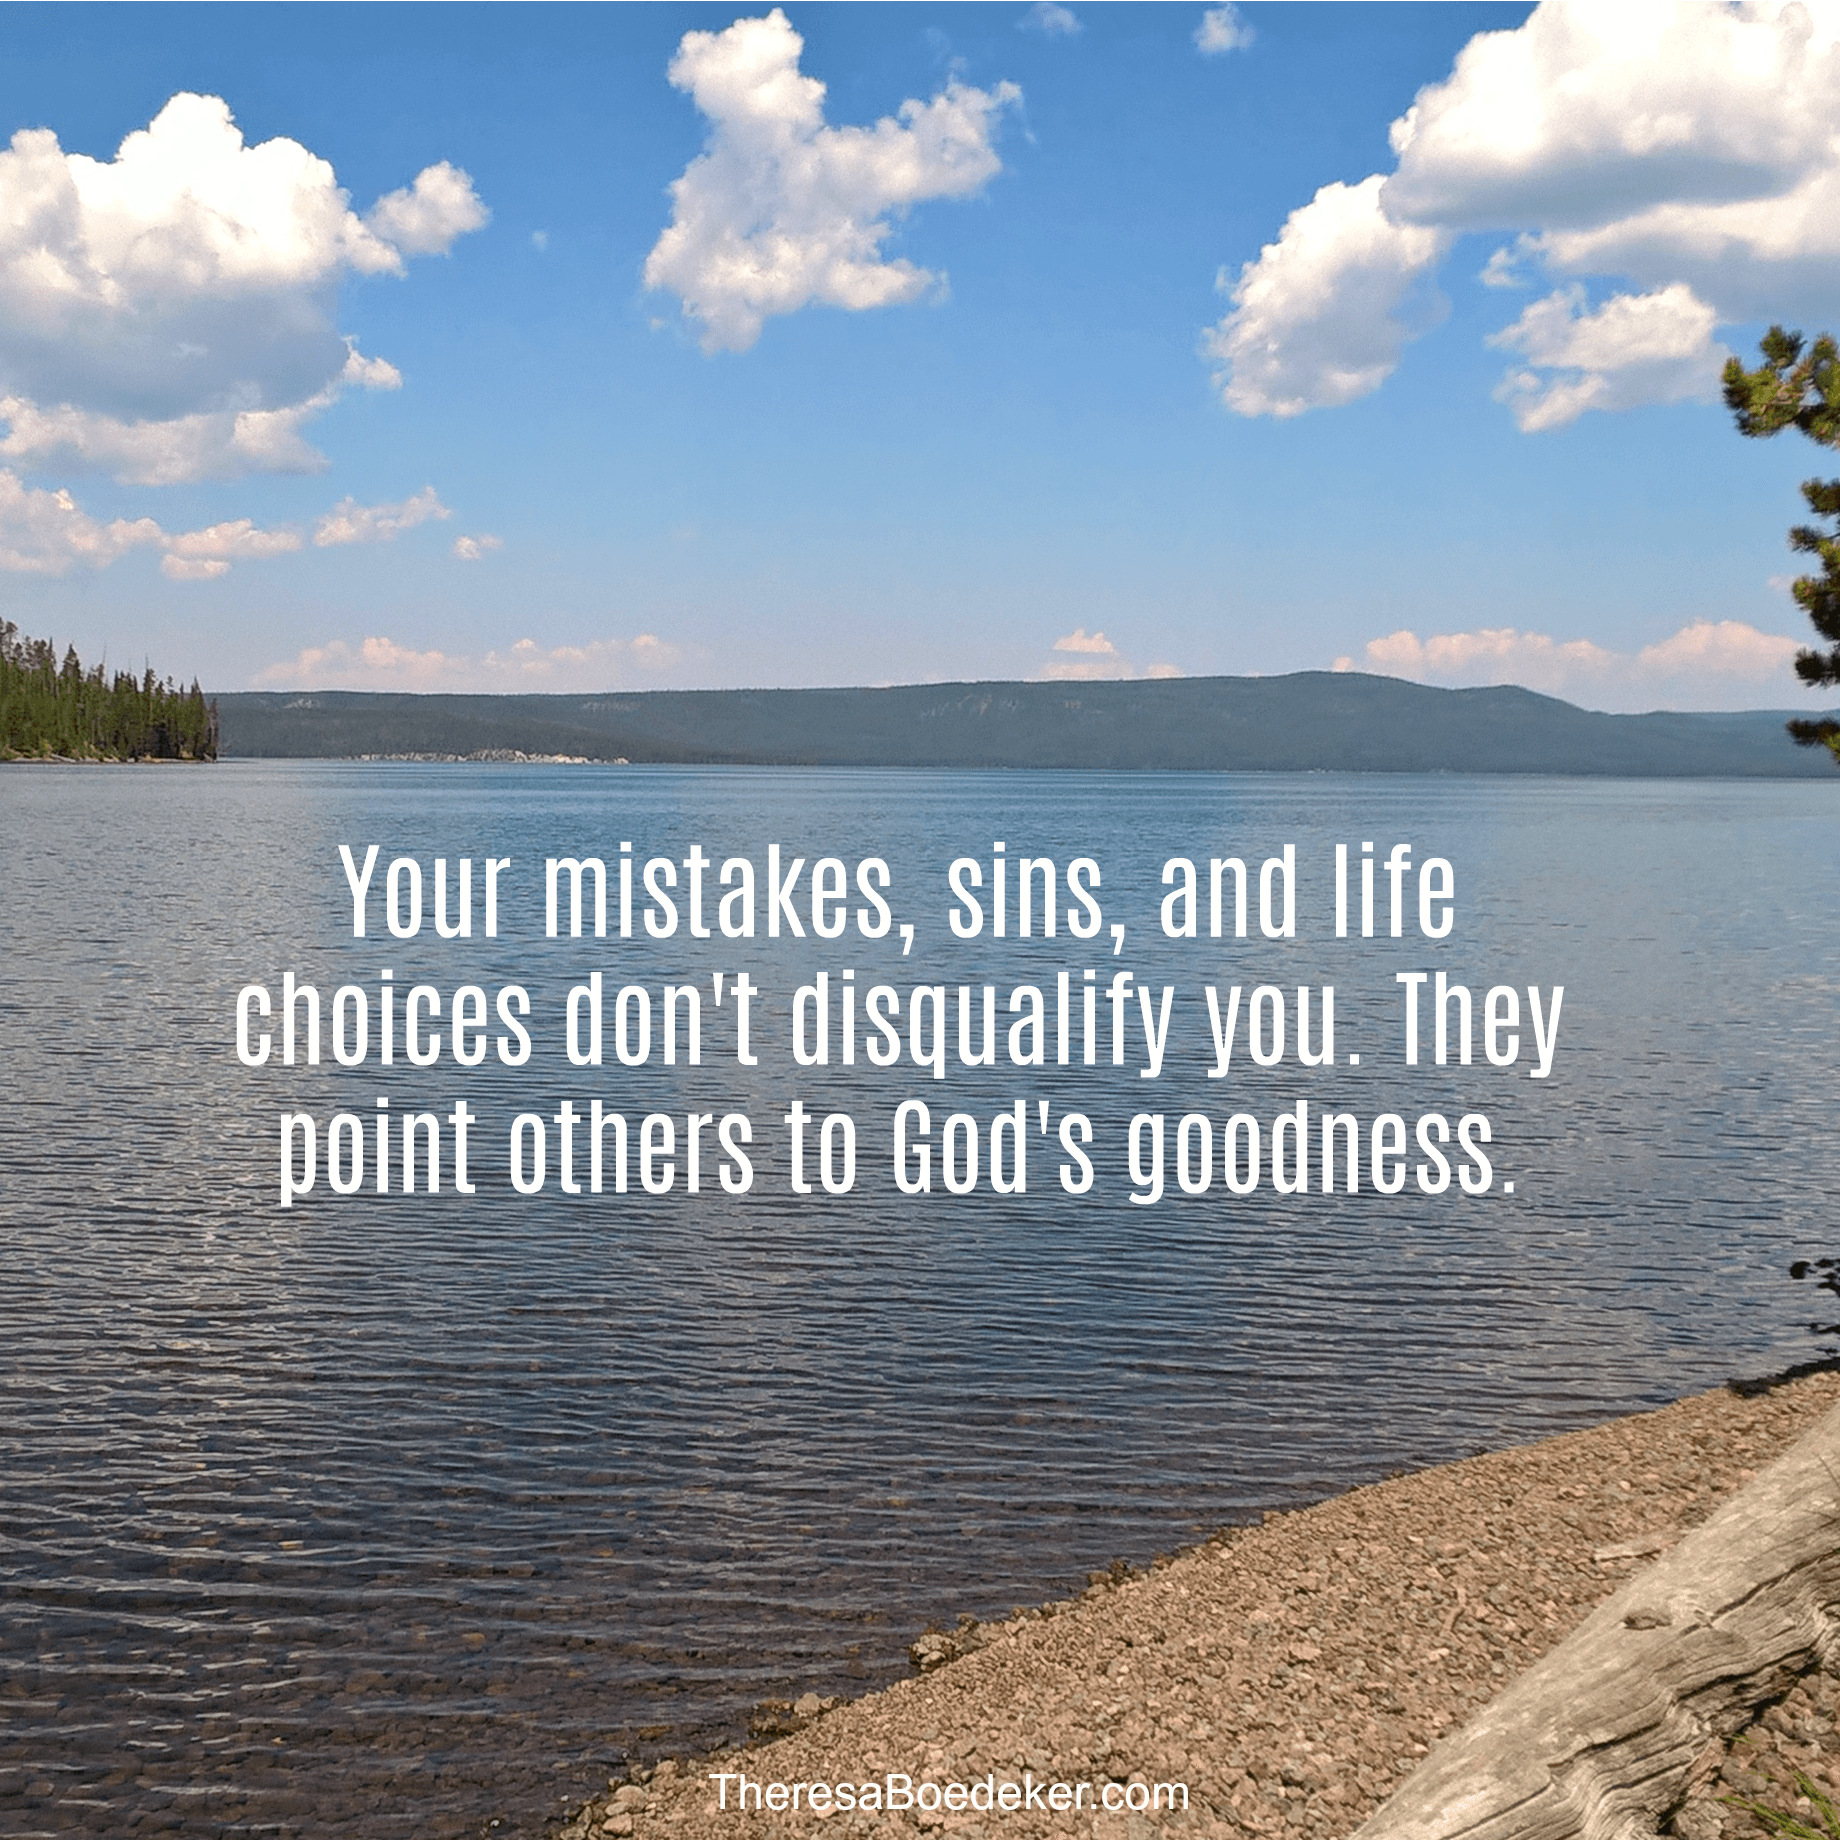 We have this false notion that God uses only nearly perfect people. The truth is that your mistakes and sins don't disqualify you, they point others to God's goodness.